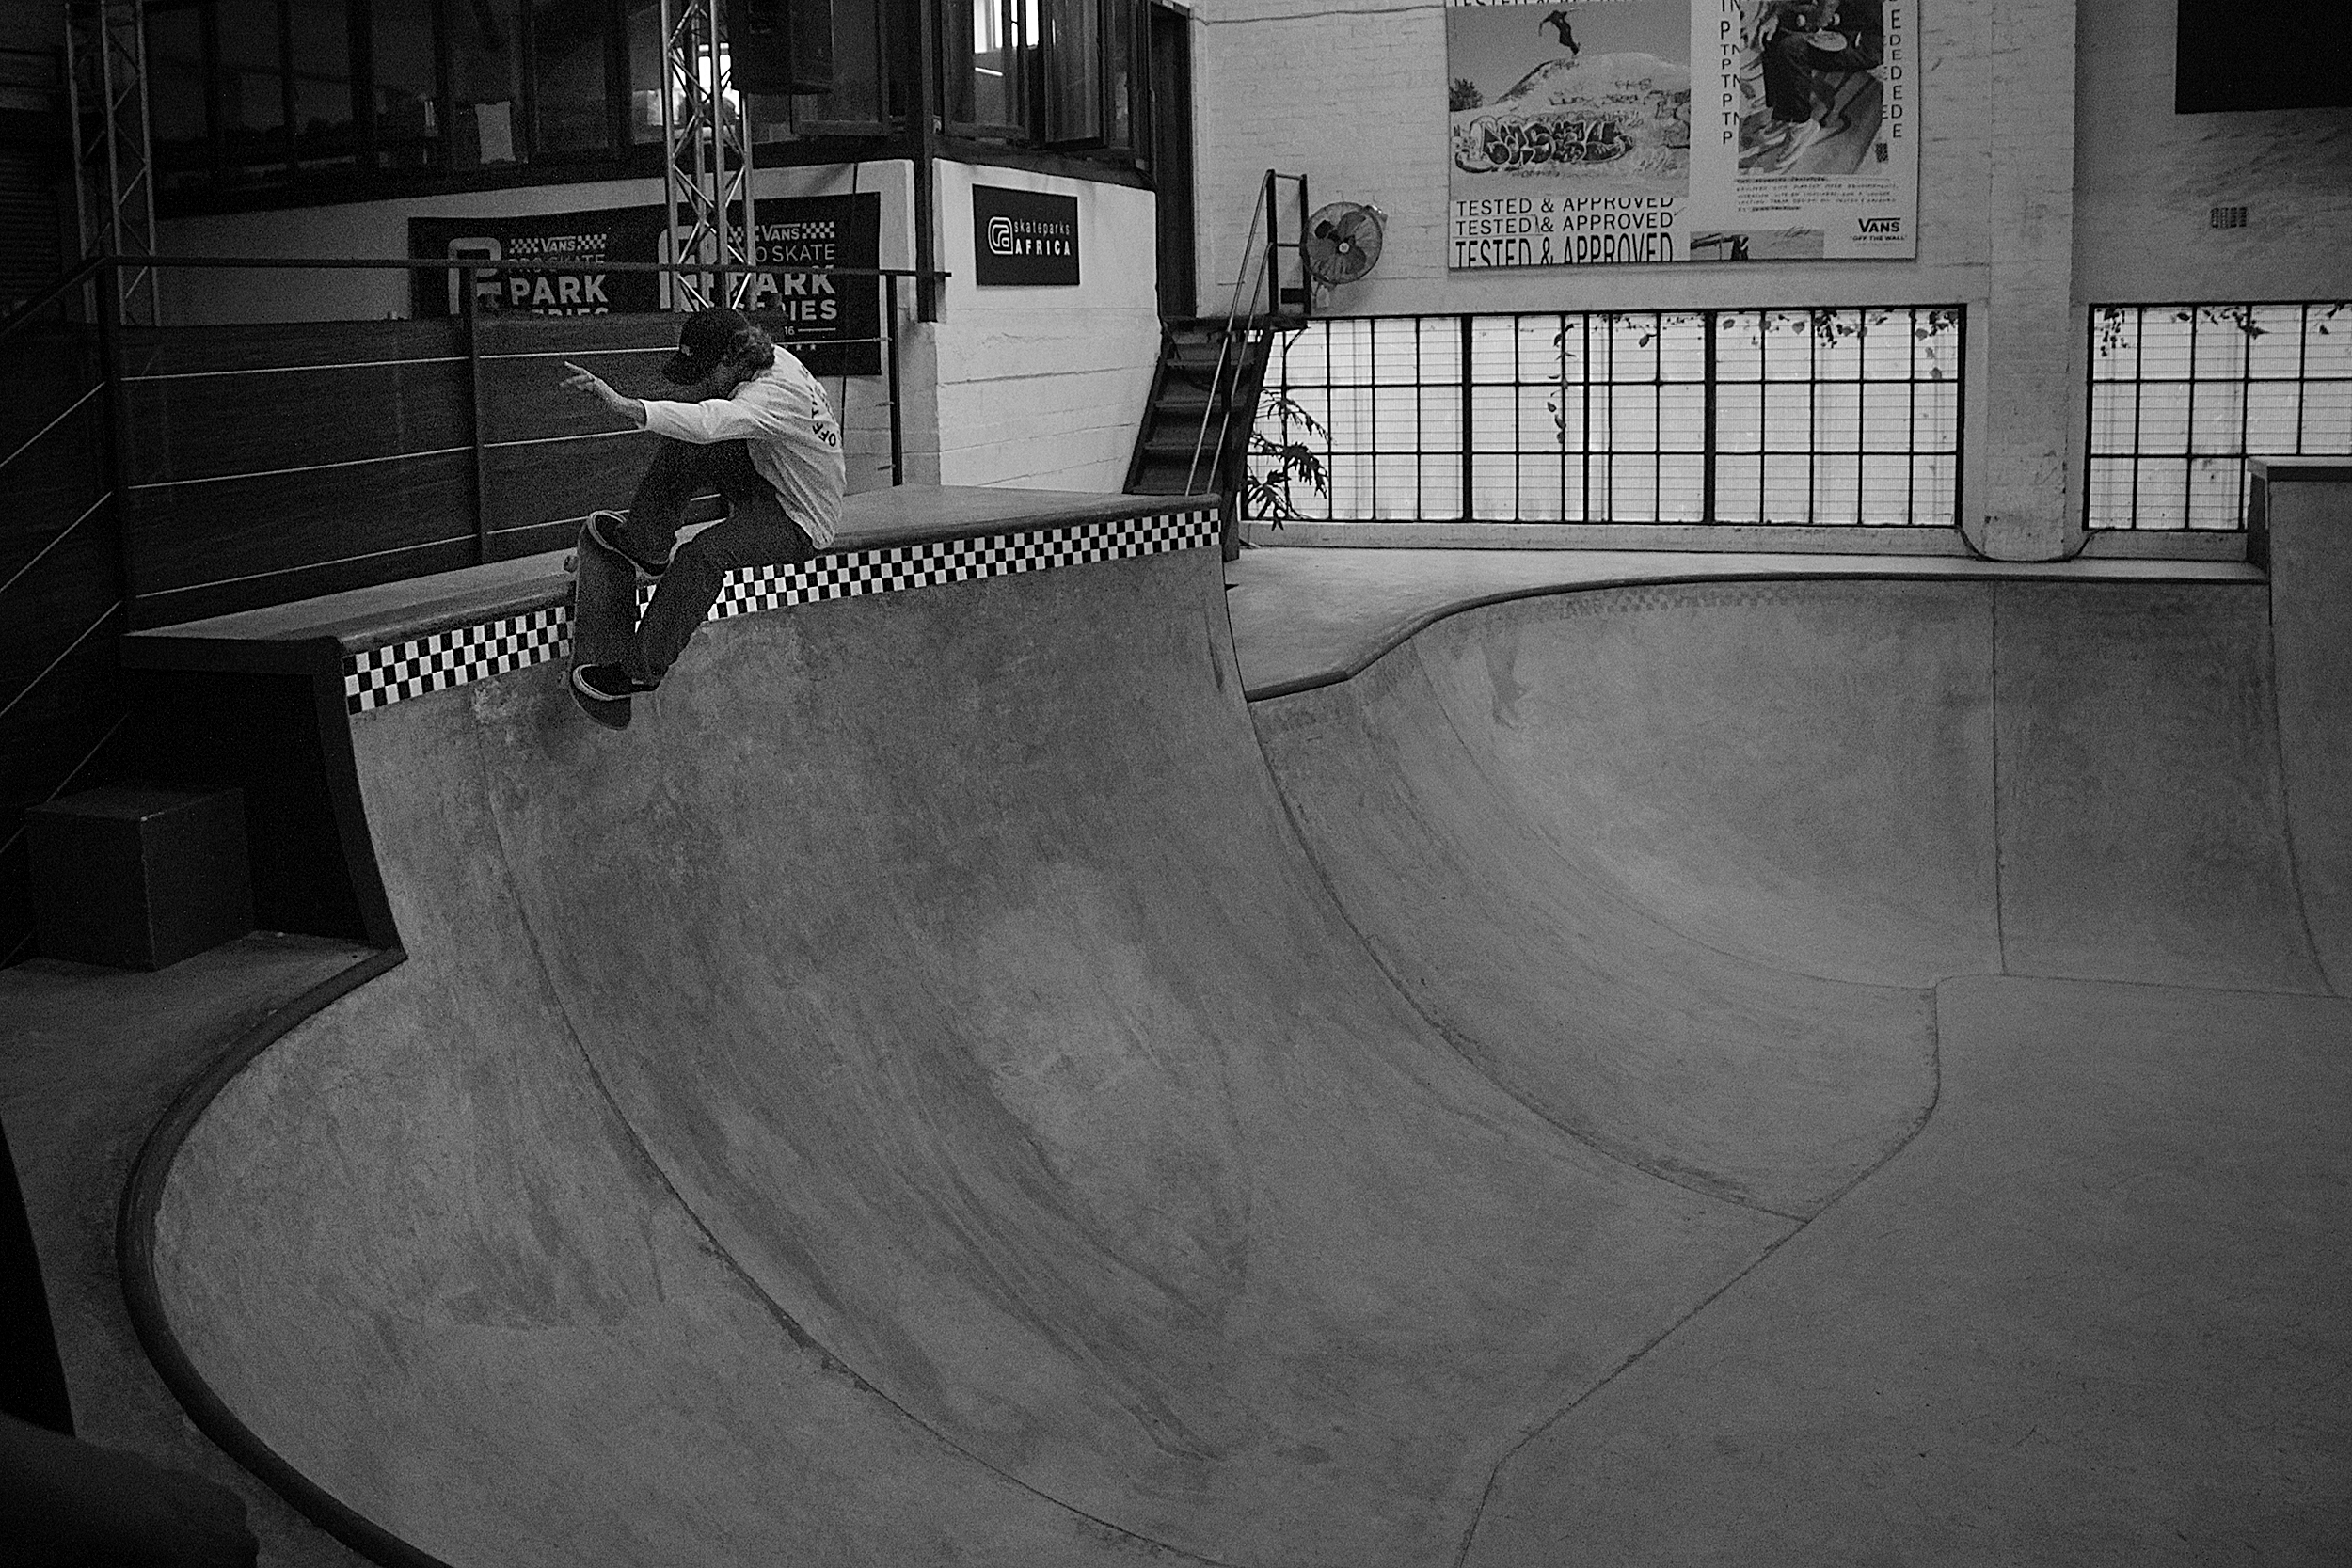 TRAE_FS_SMITH_BOWL